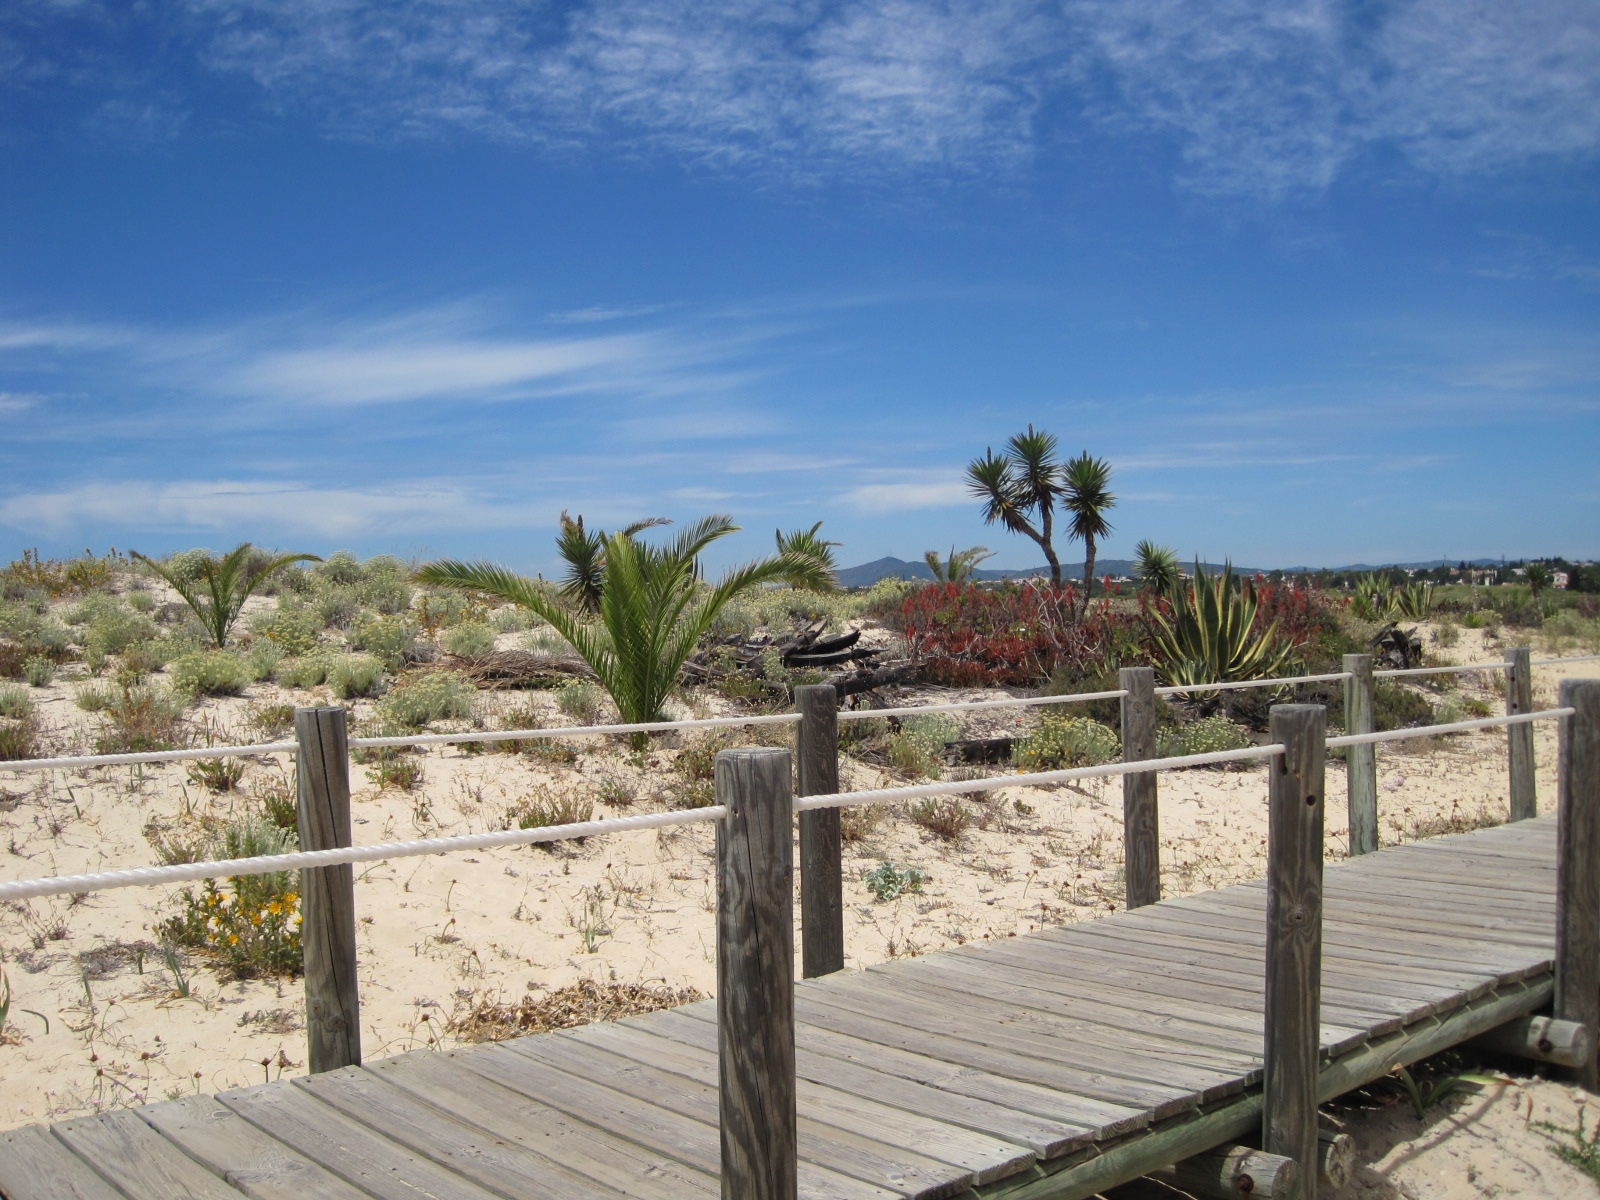 And you're onto the boardwalk at Barril beach